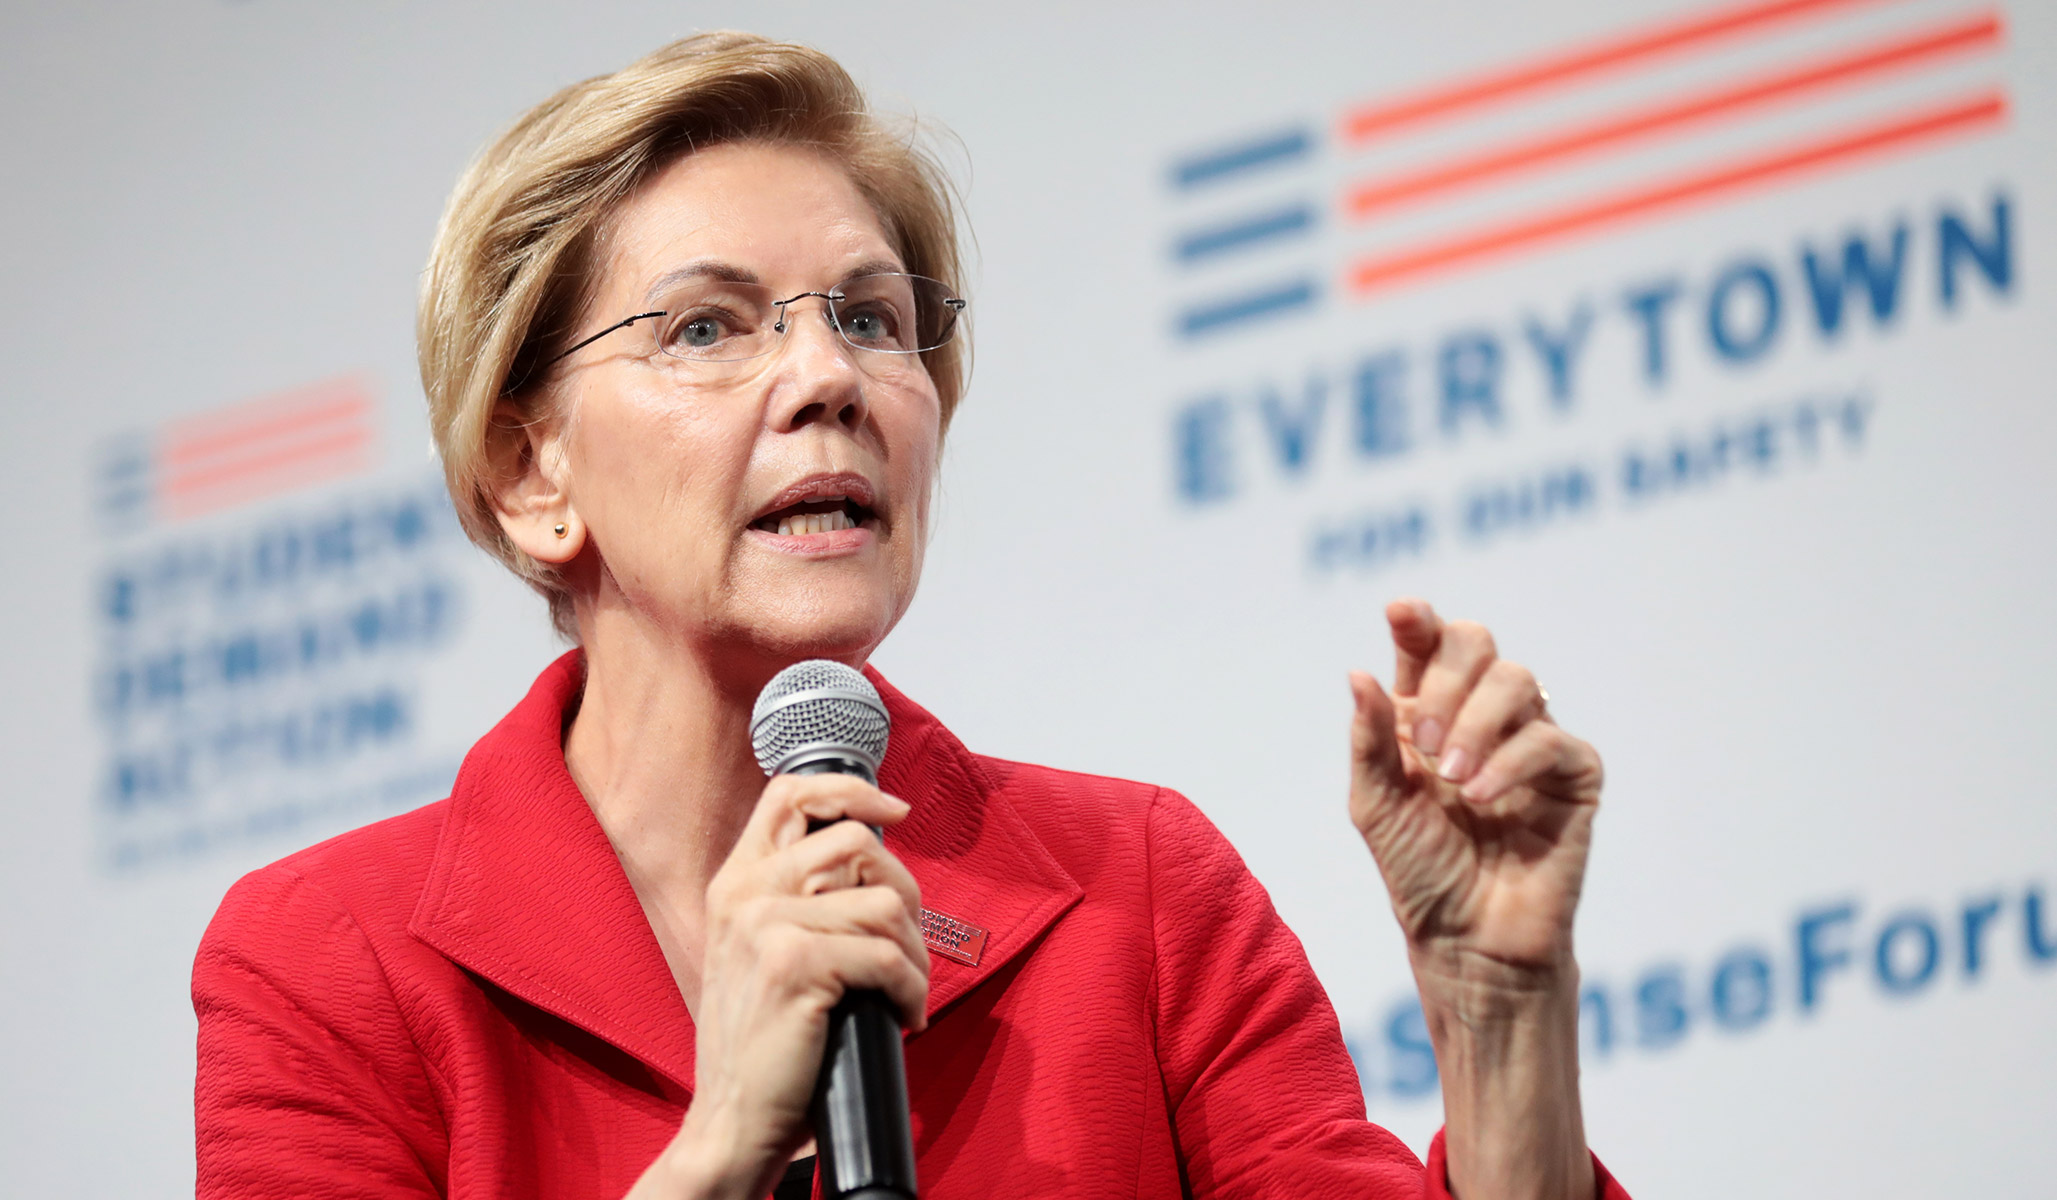 Warren's Wealth Tax Is Unethical